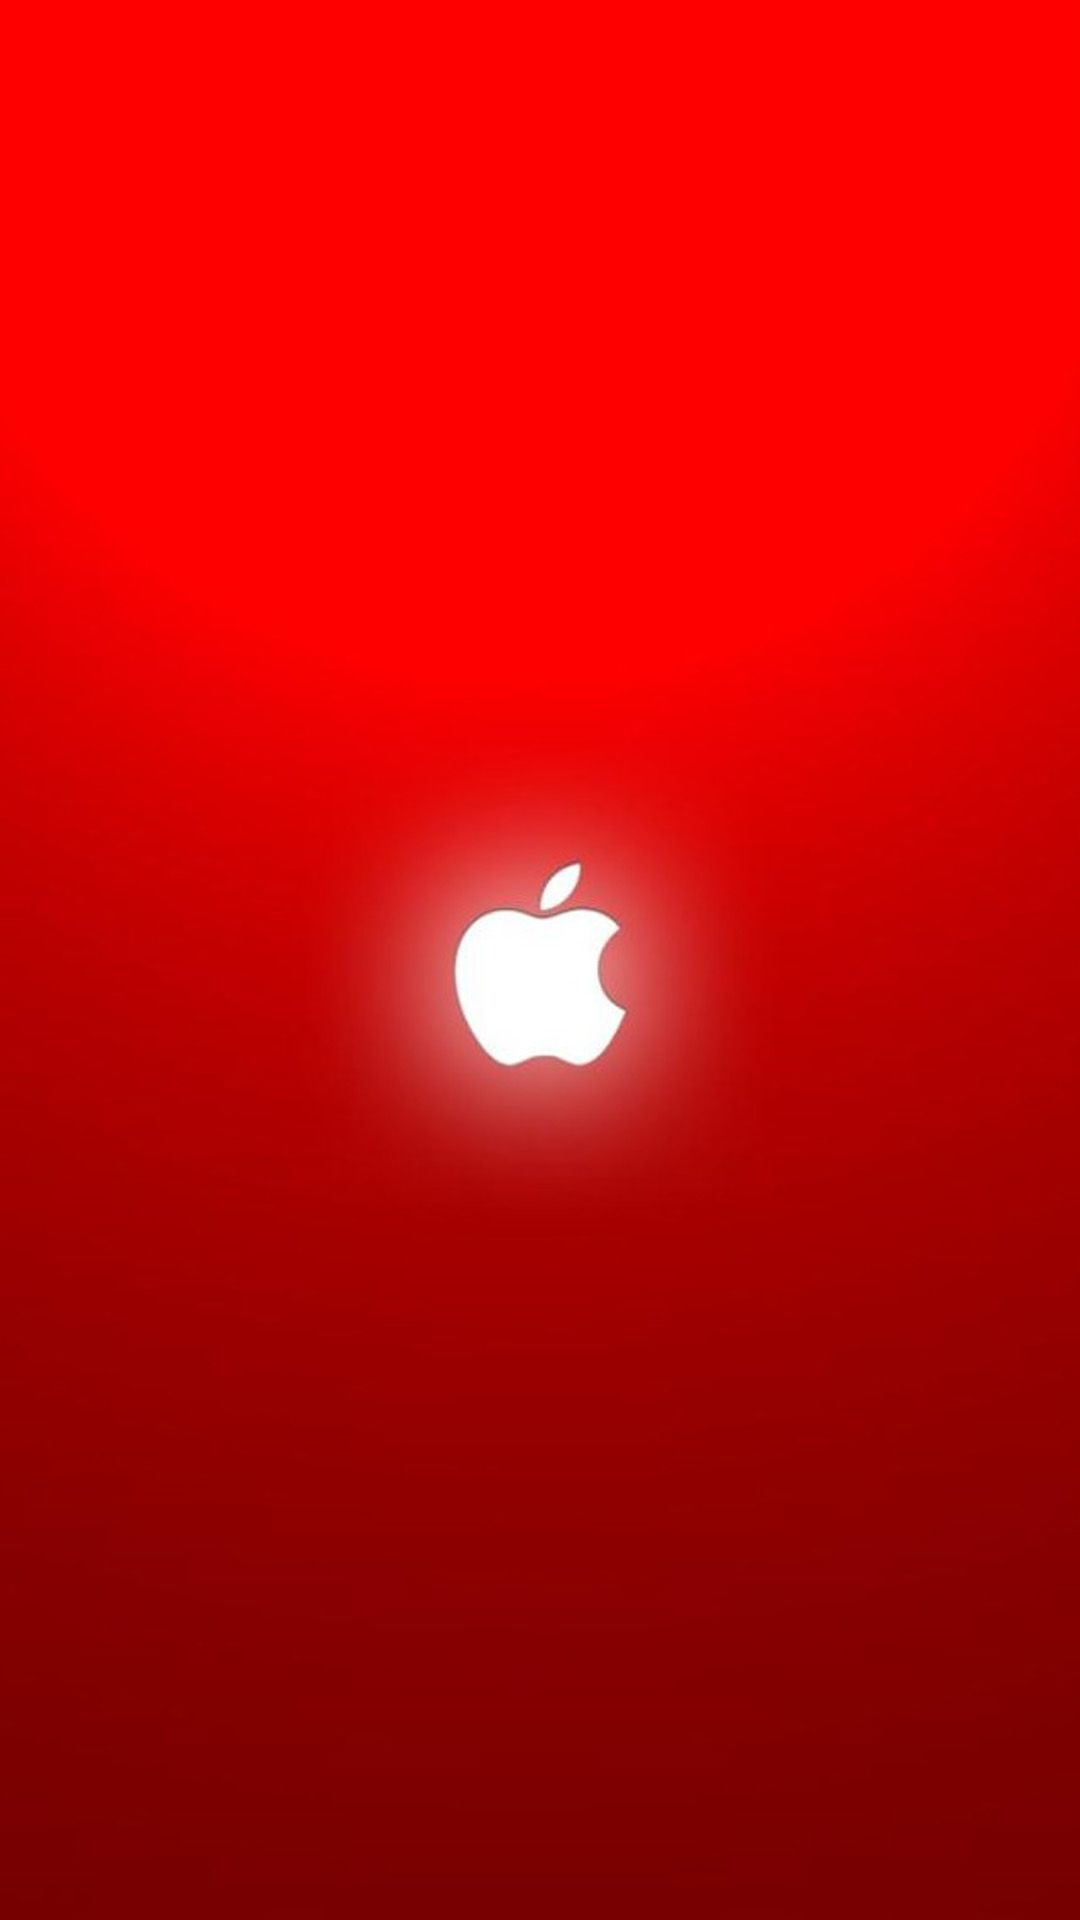 Wallpaper iphone apple logo - Cool Wallpaper For Lock Screen For Iphone See More View Source Image